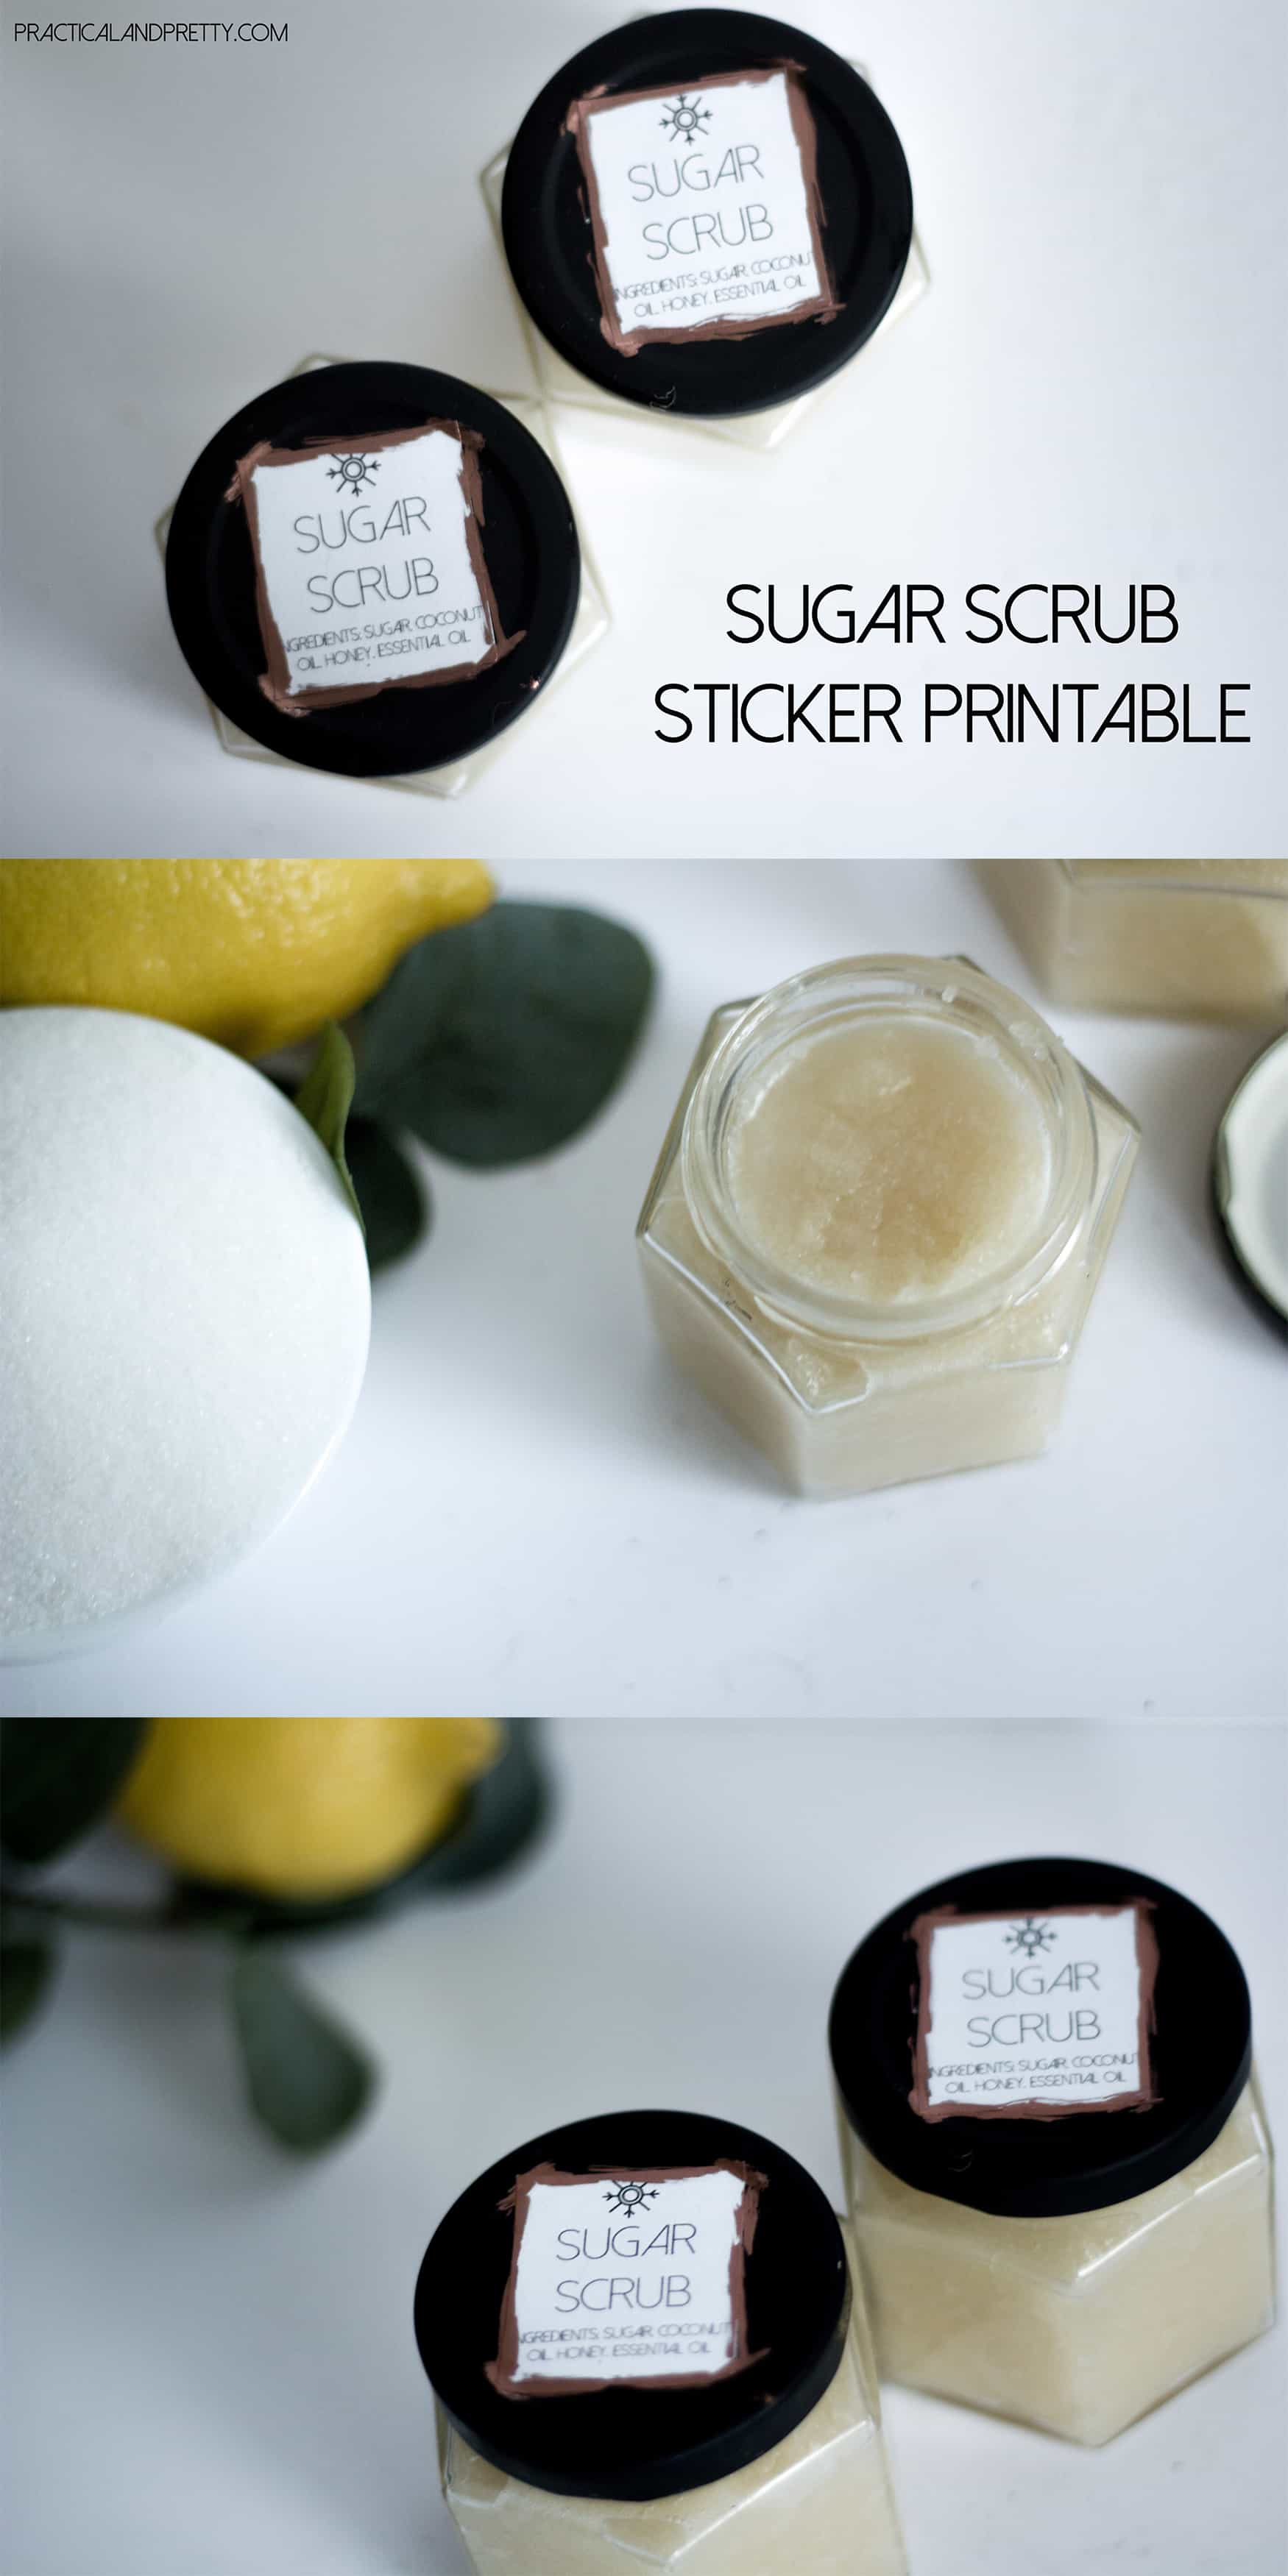 You need this sugar scrub in your life. Plus there is a free label printable included!